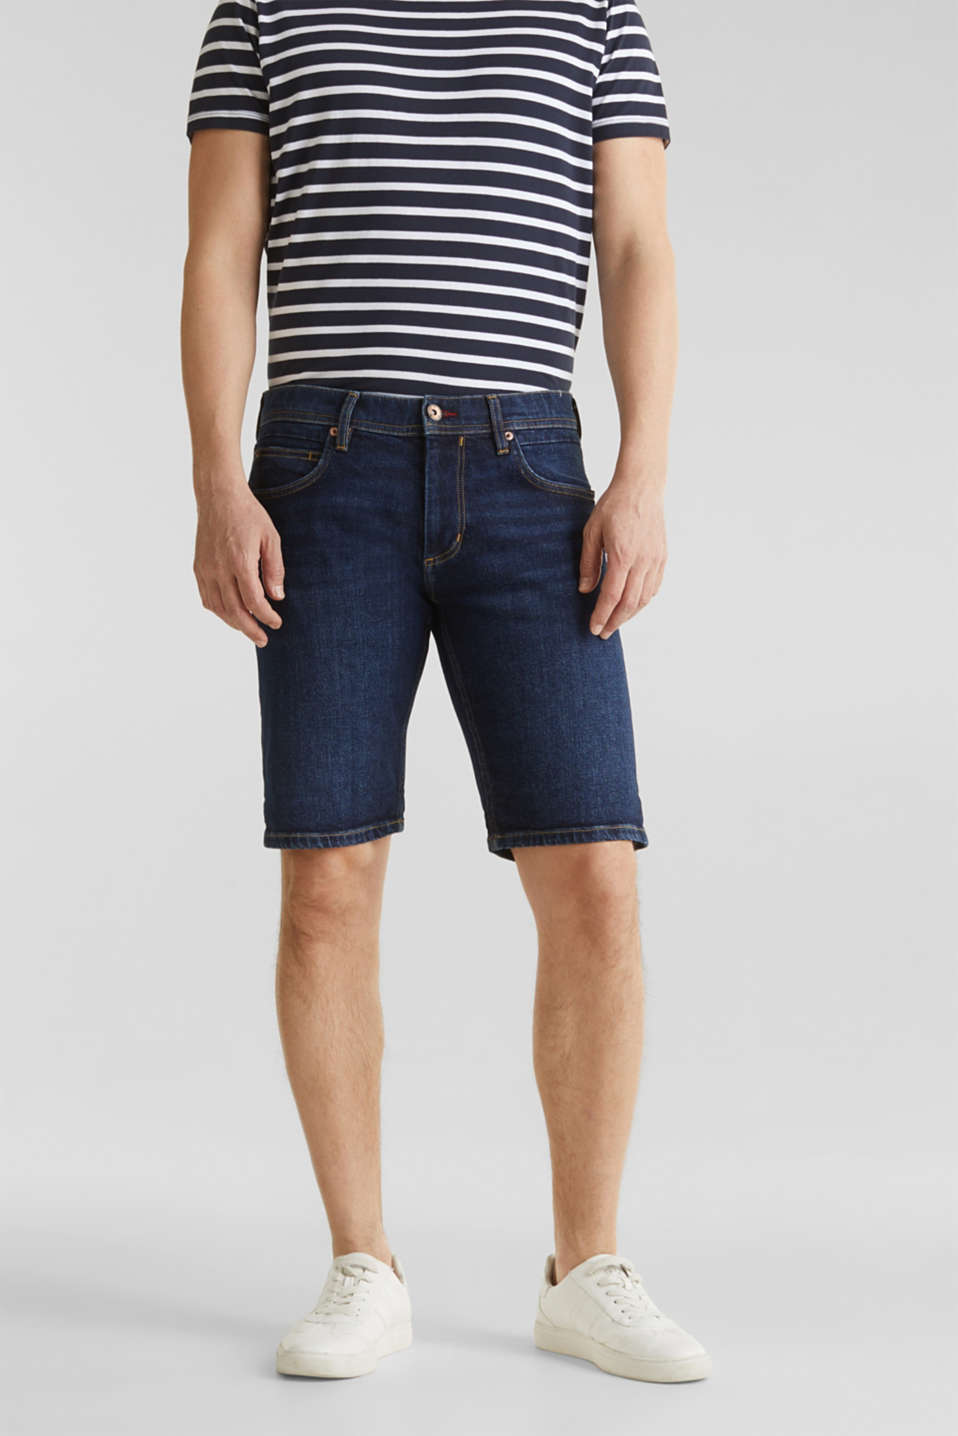 Esprit - Denim shorts with organic cotton